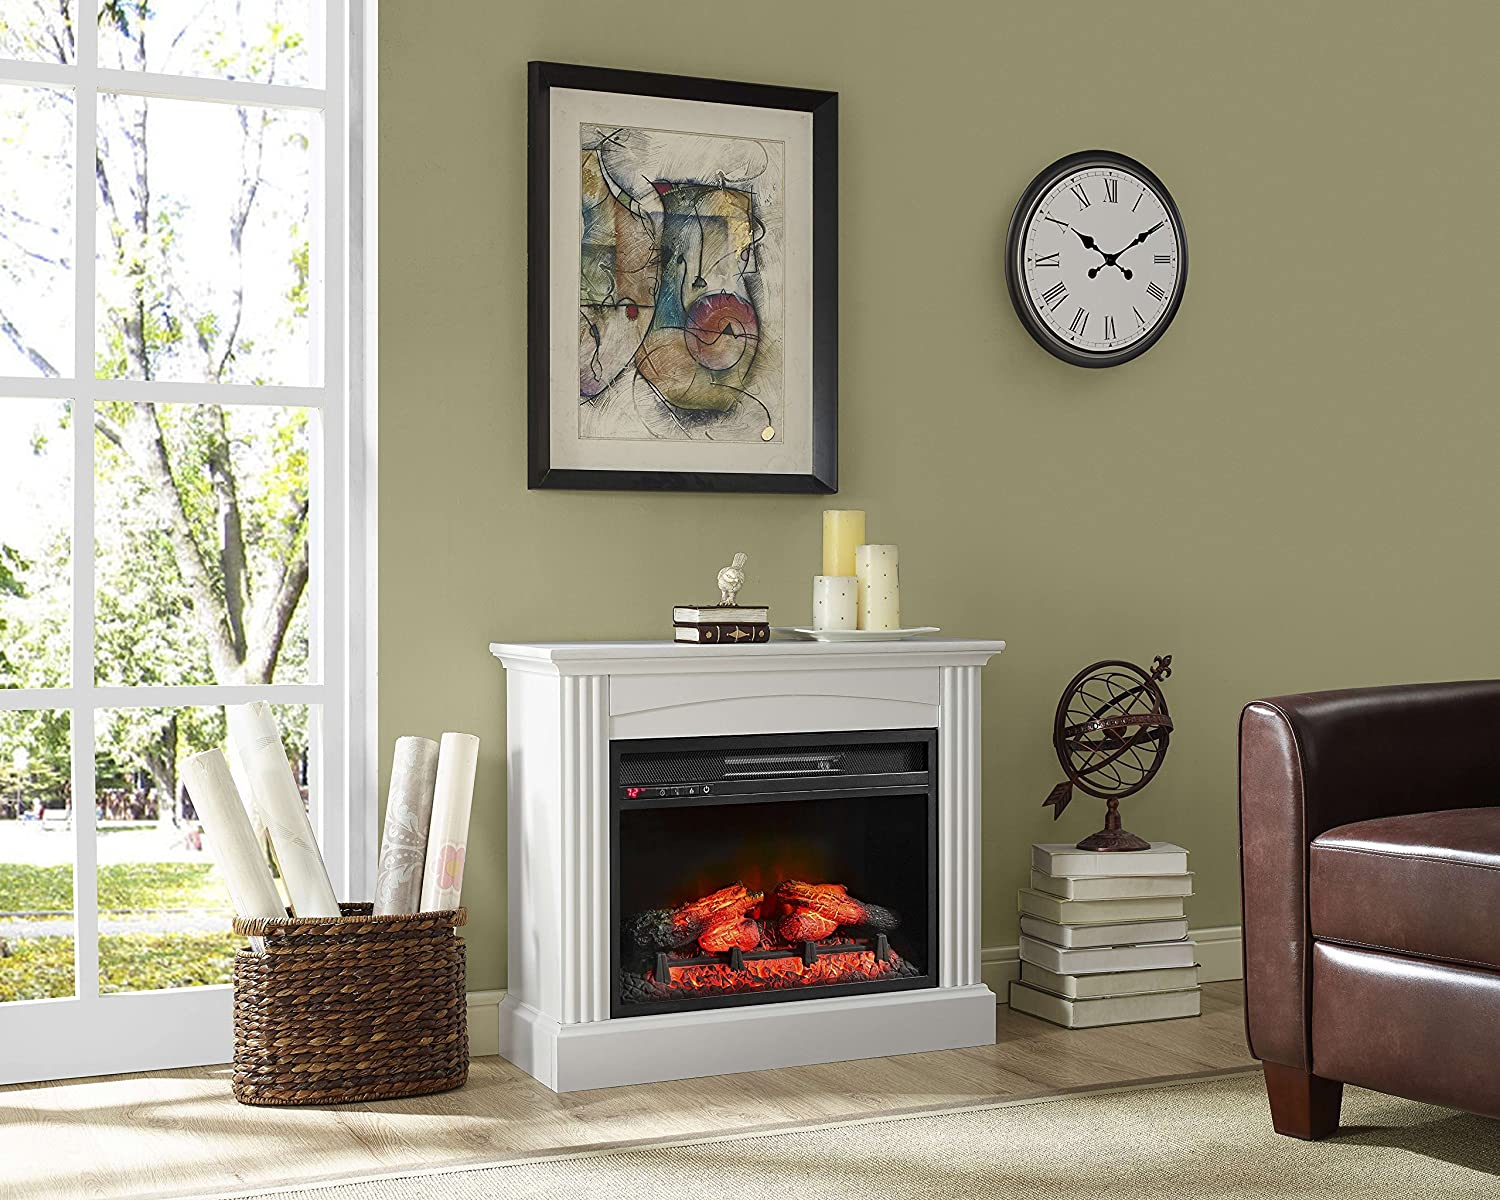 Top Rated Infrared Heaters Top Five Finds